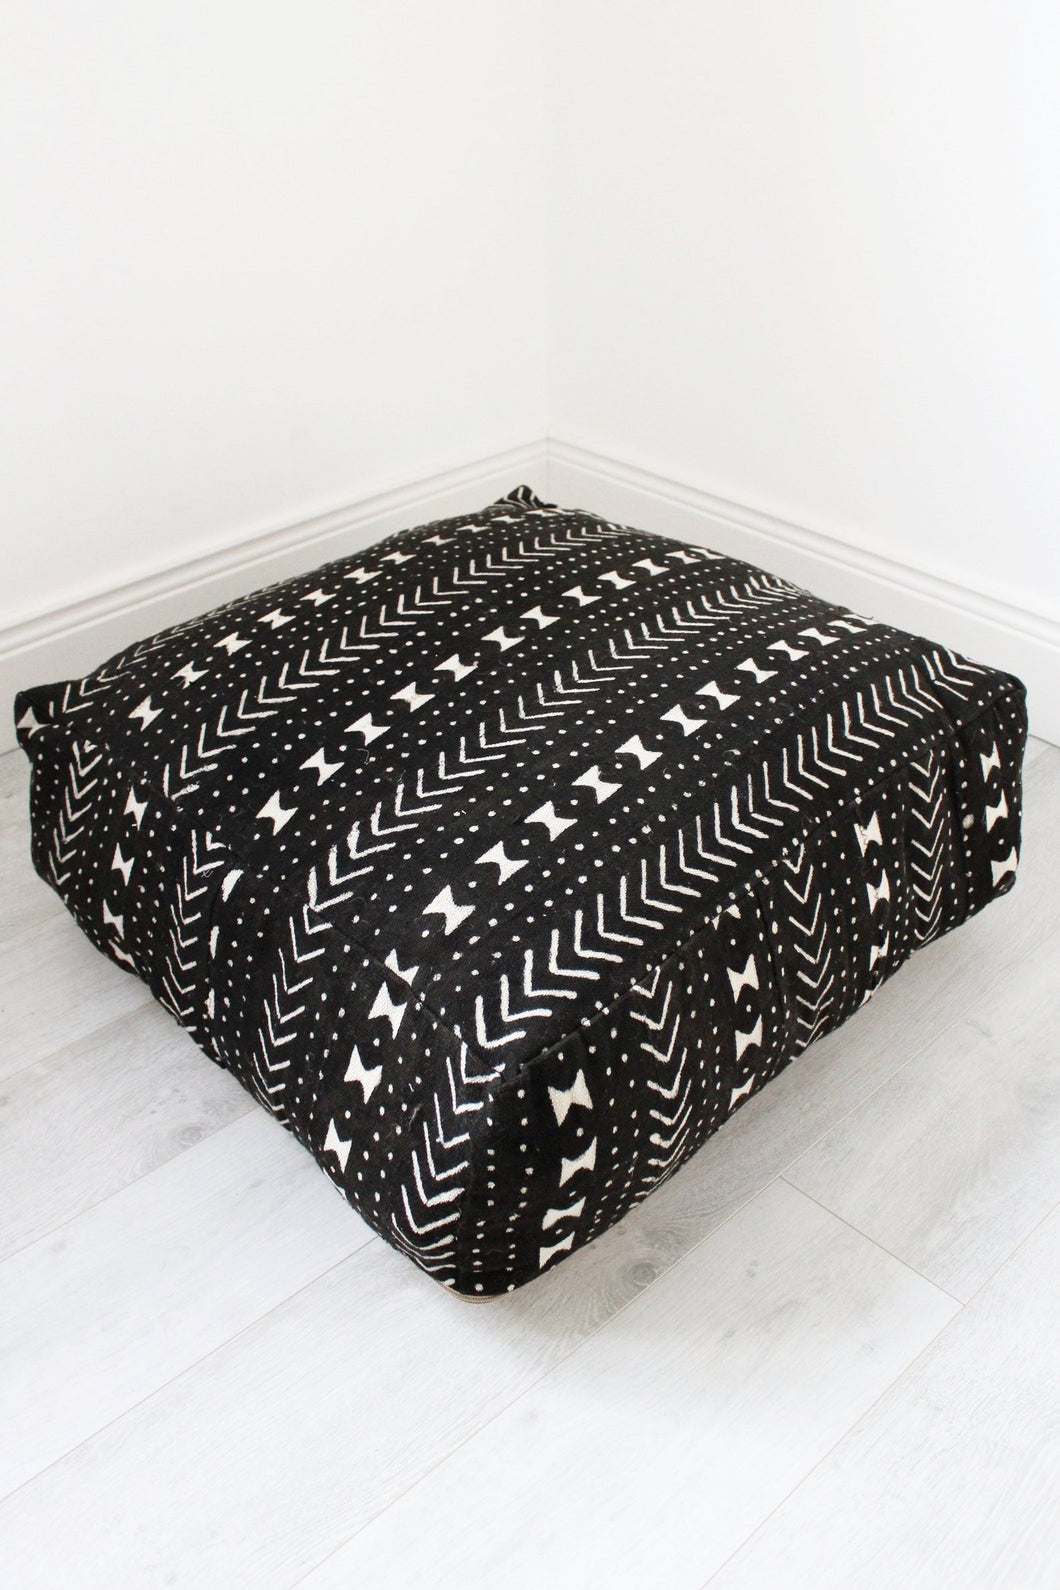 Moroccan Black / White Berber Floor Cushion - Bohemian Lifestyle